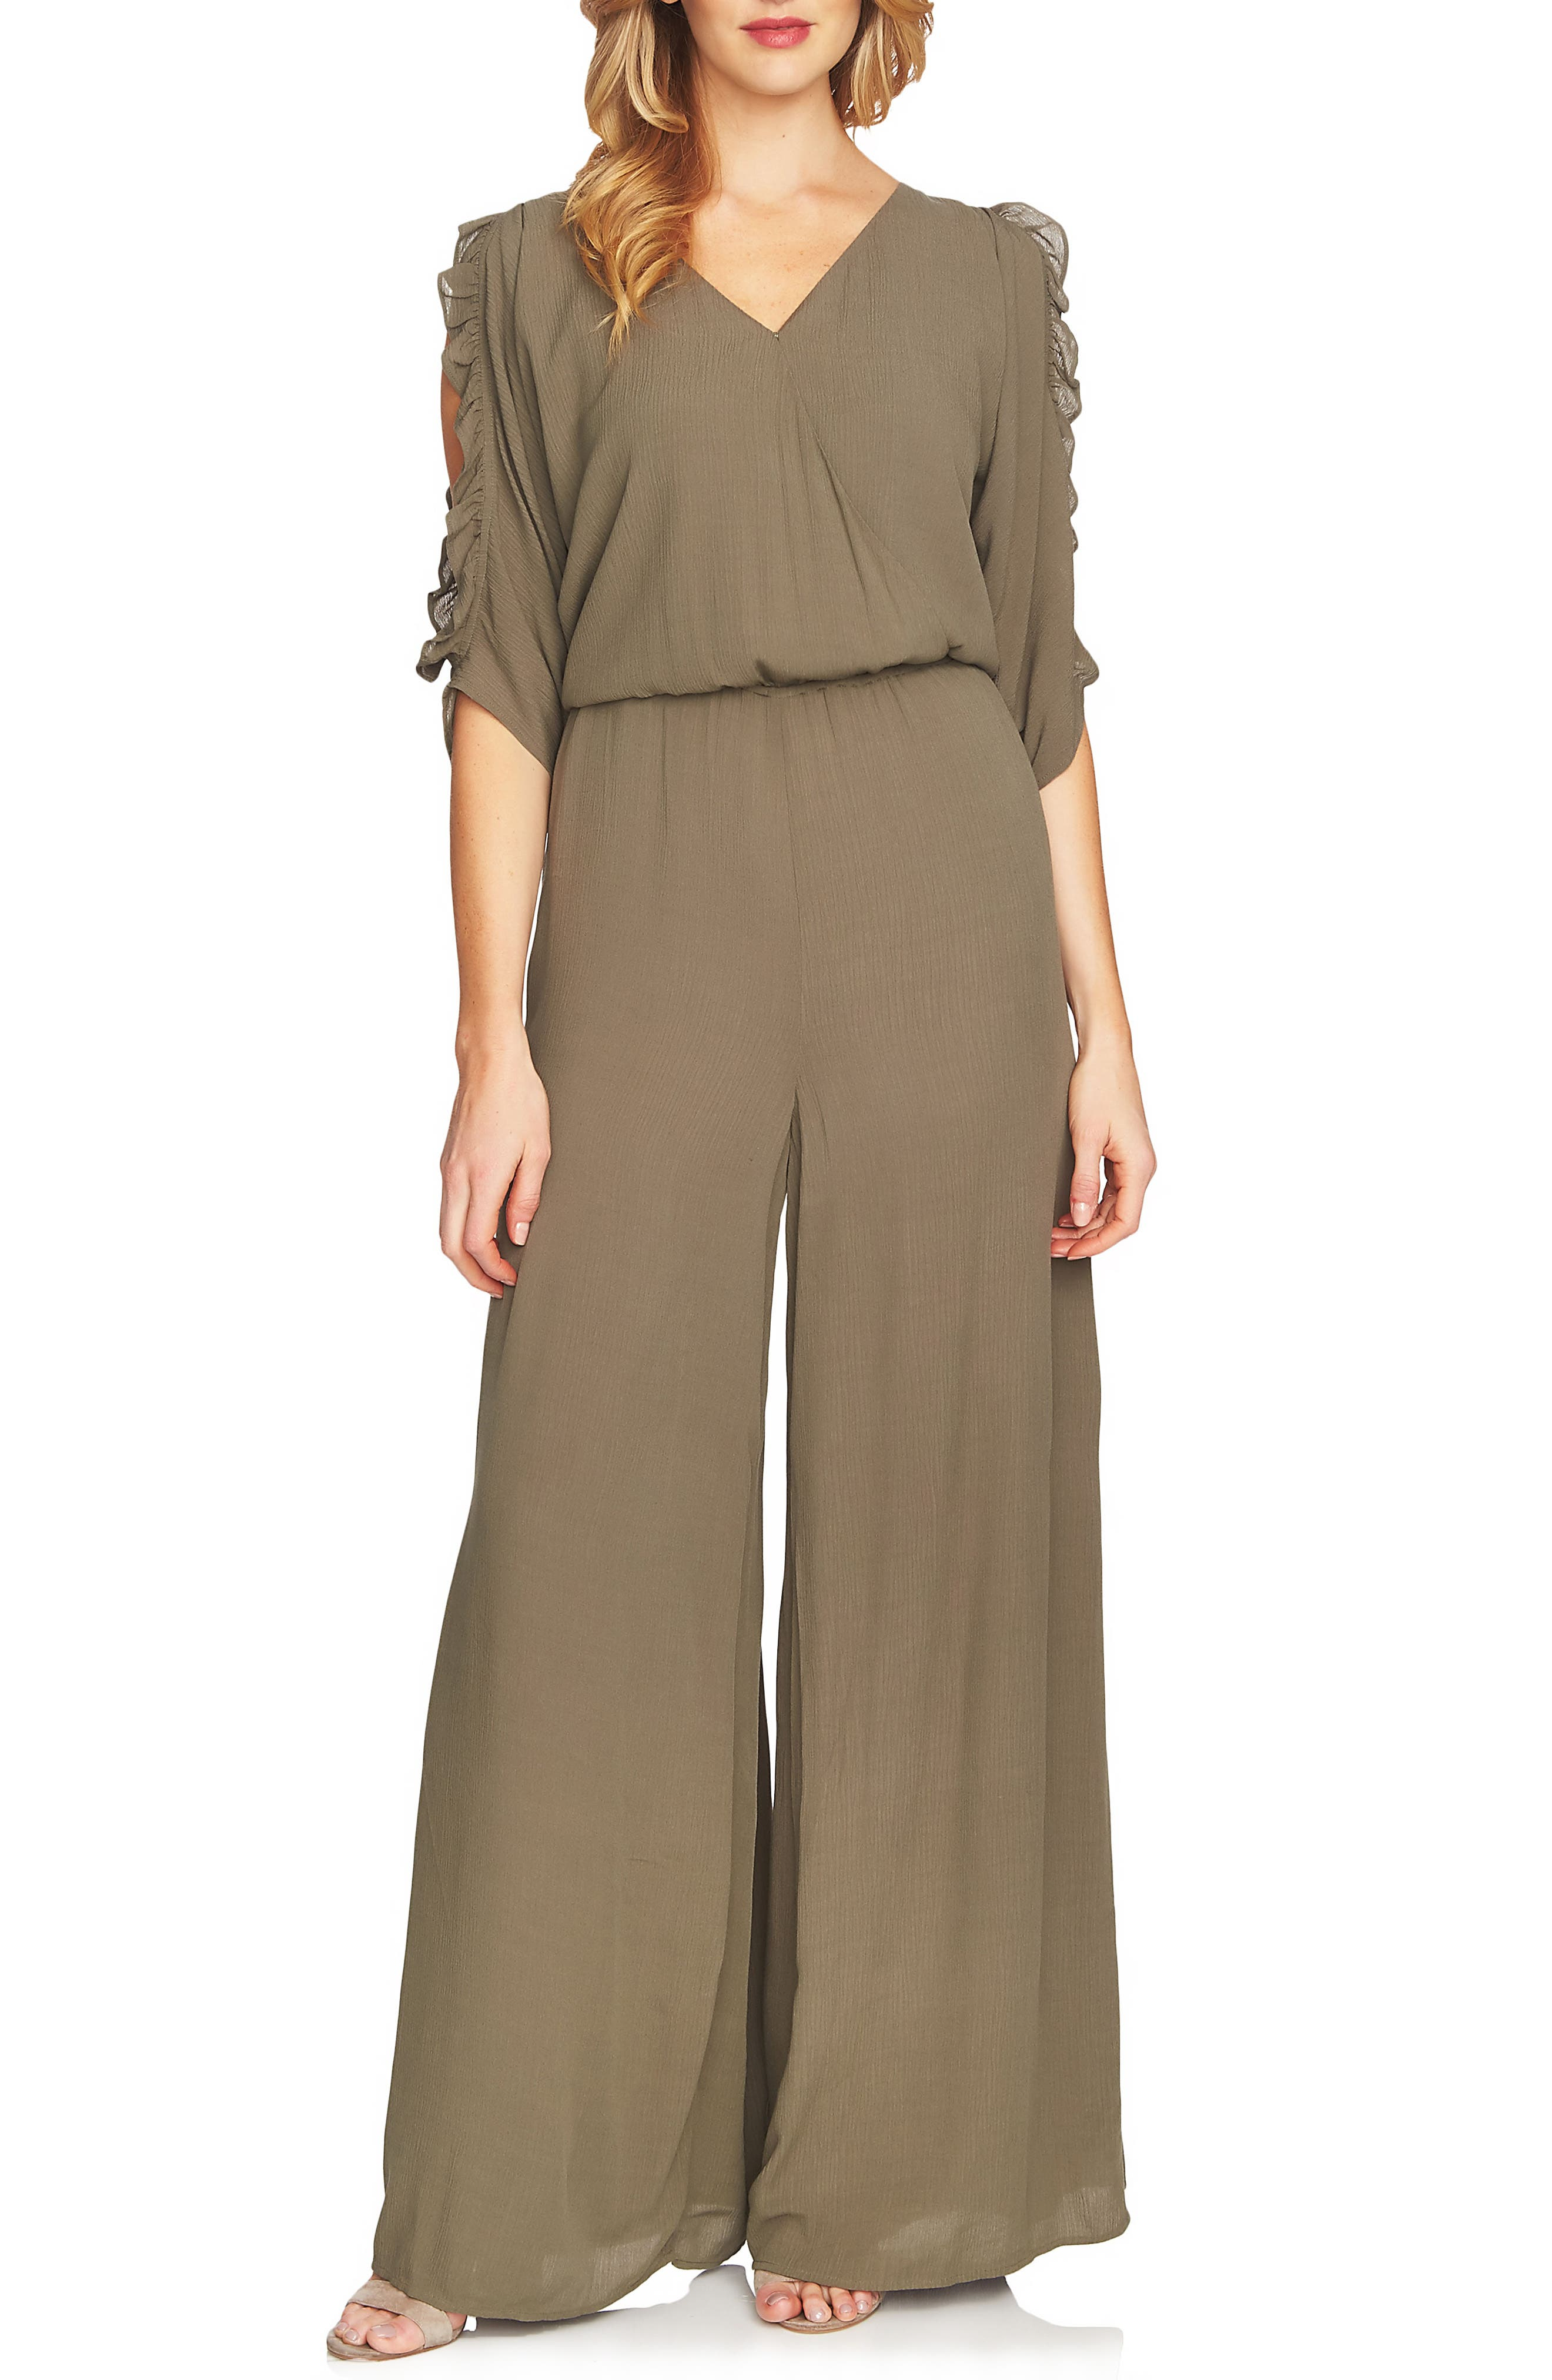 Ruffle Sleeve Wide Leg Jumpsuit,                             Main thumbnail 1, color,                             Dusty Olive